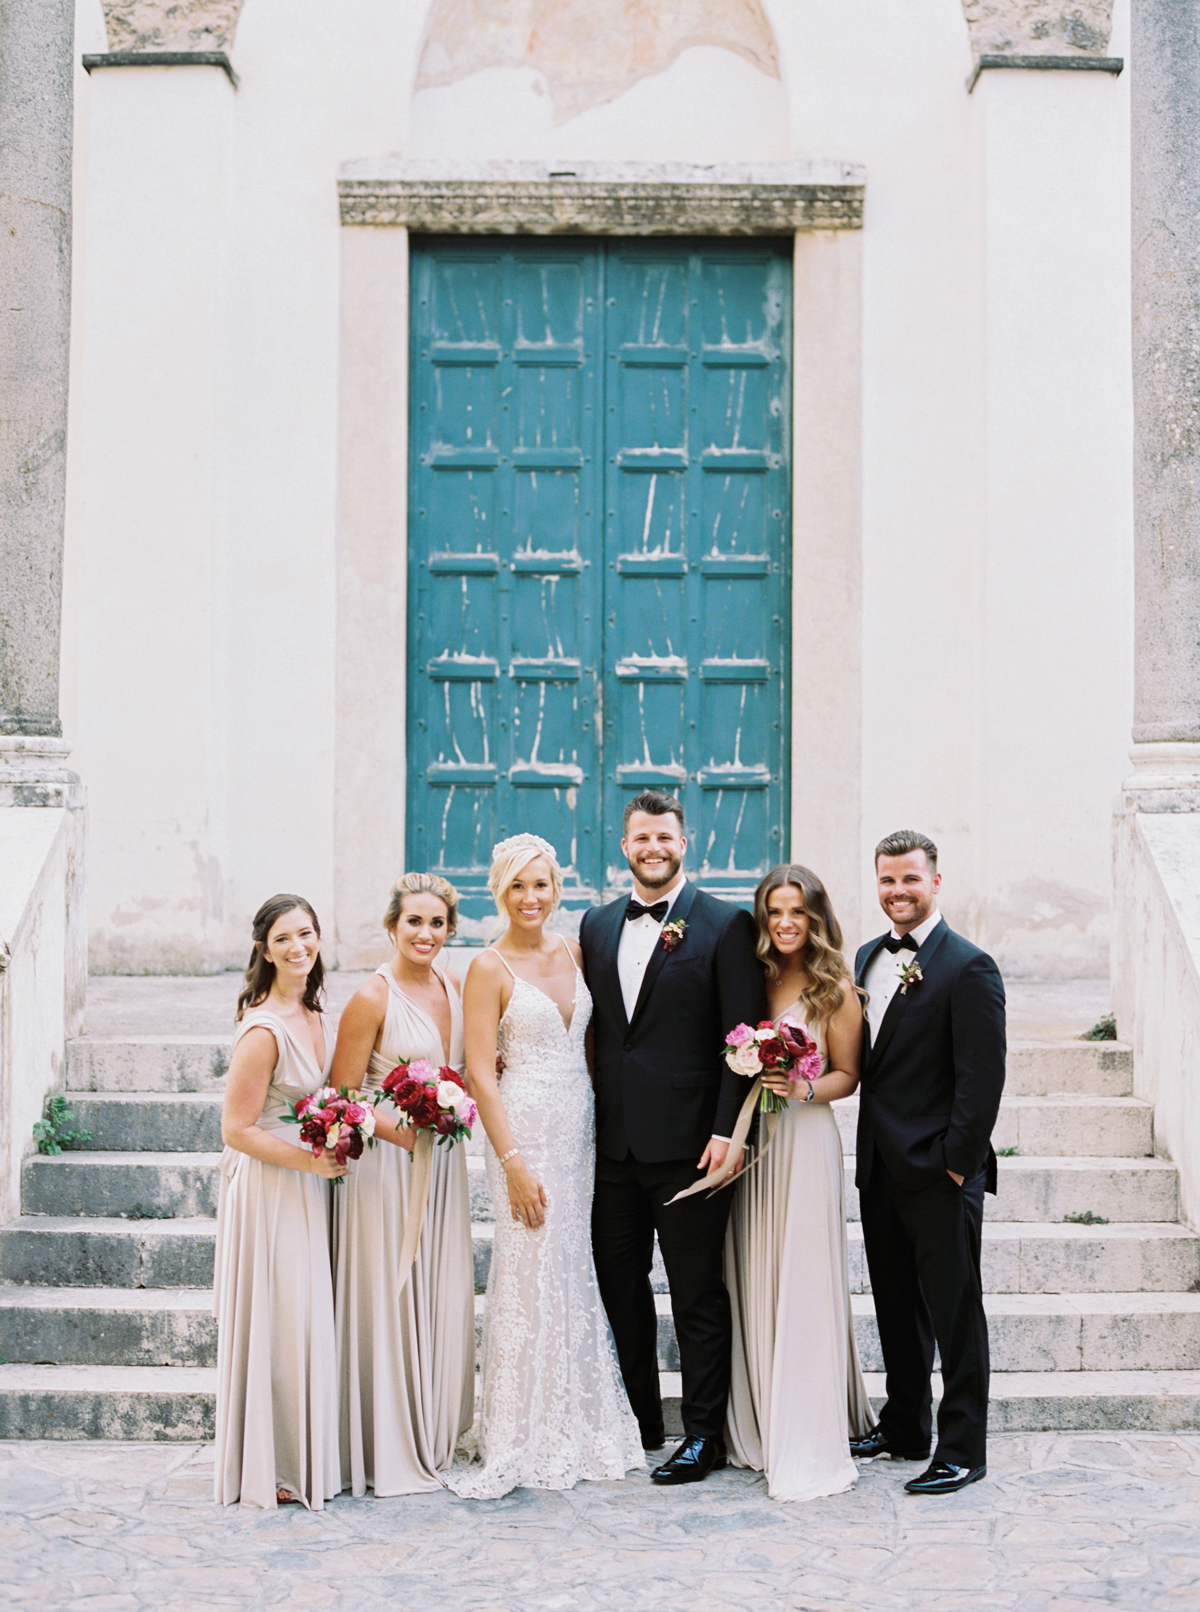 allie and joe italy wedding party outside of historic italian venue